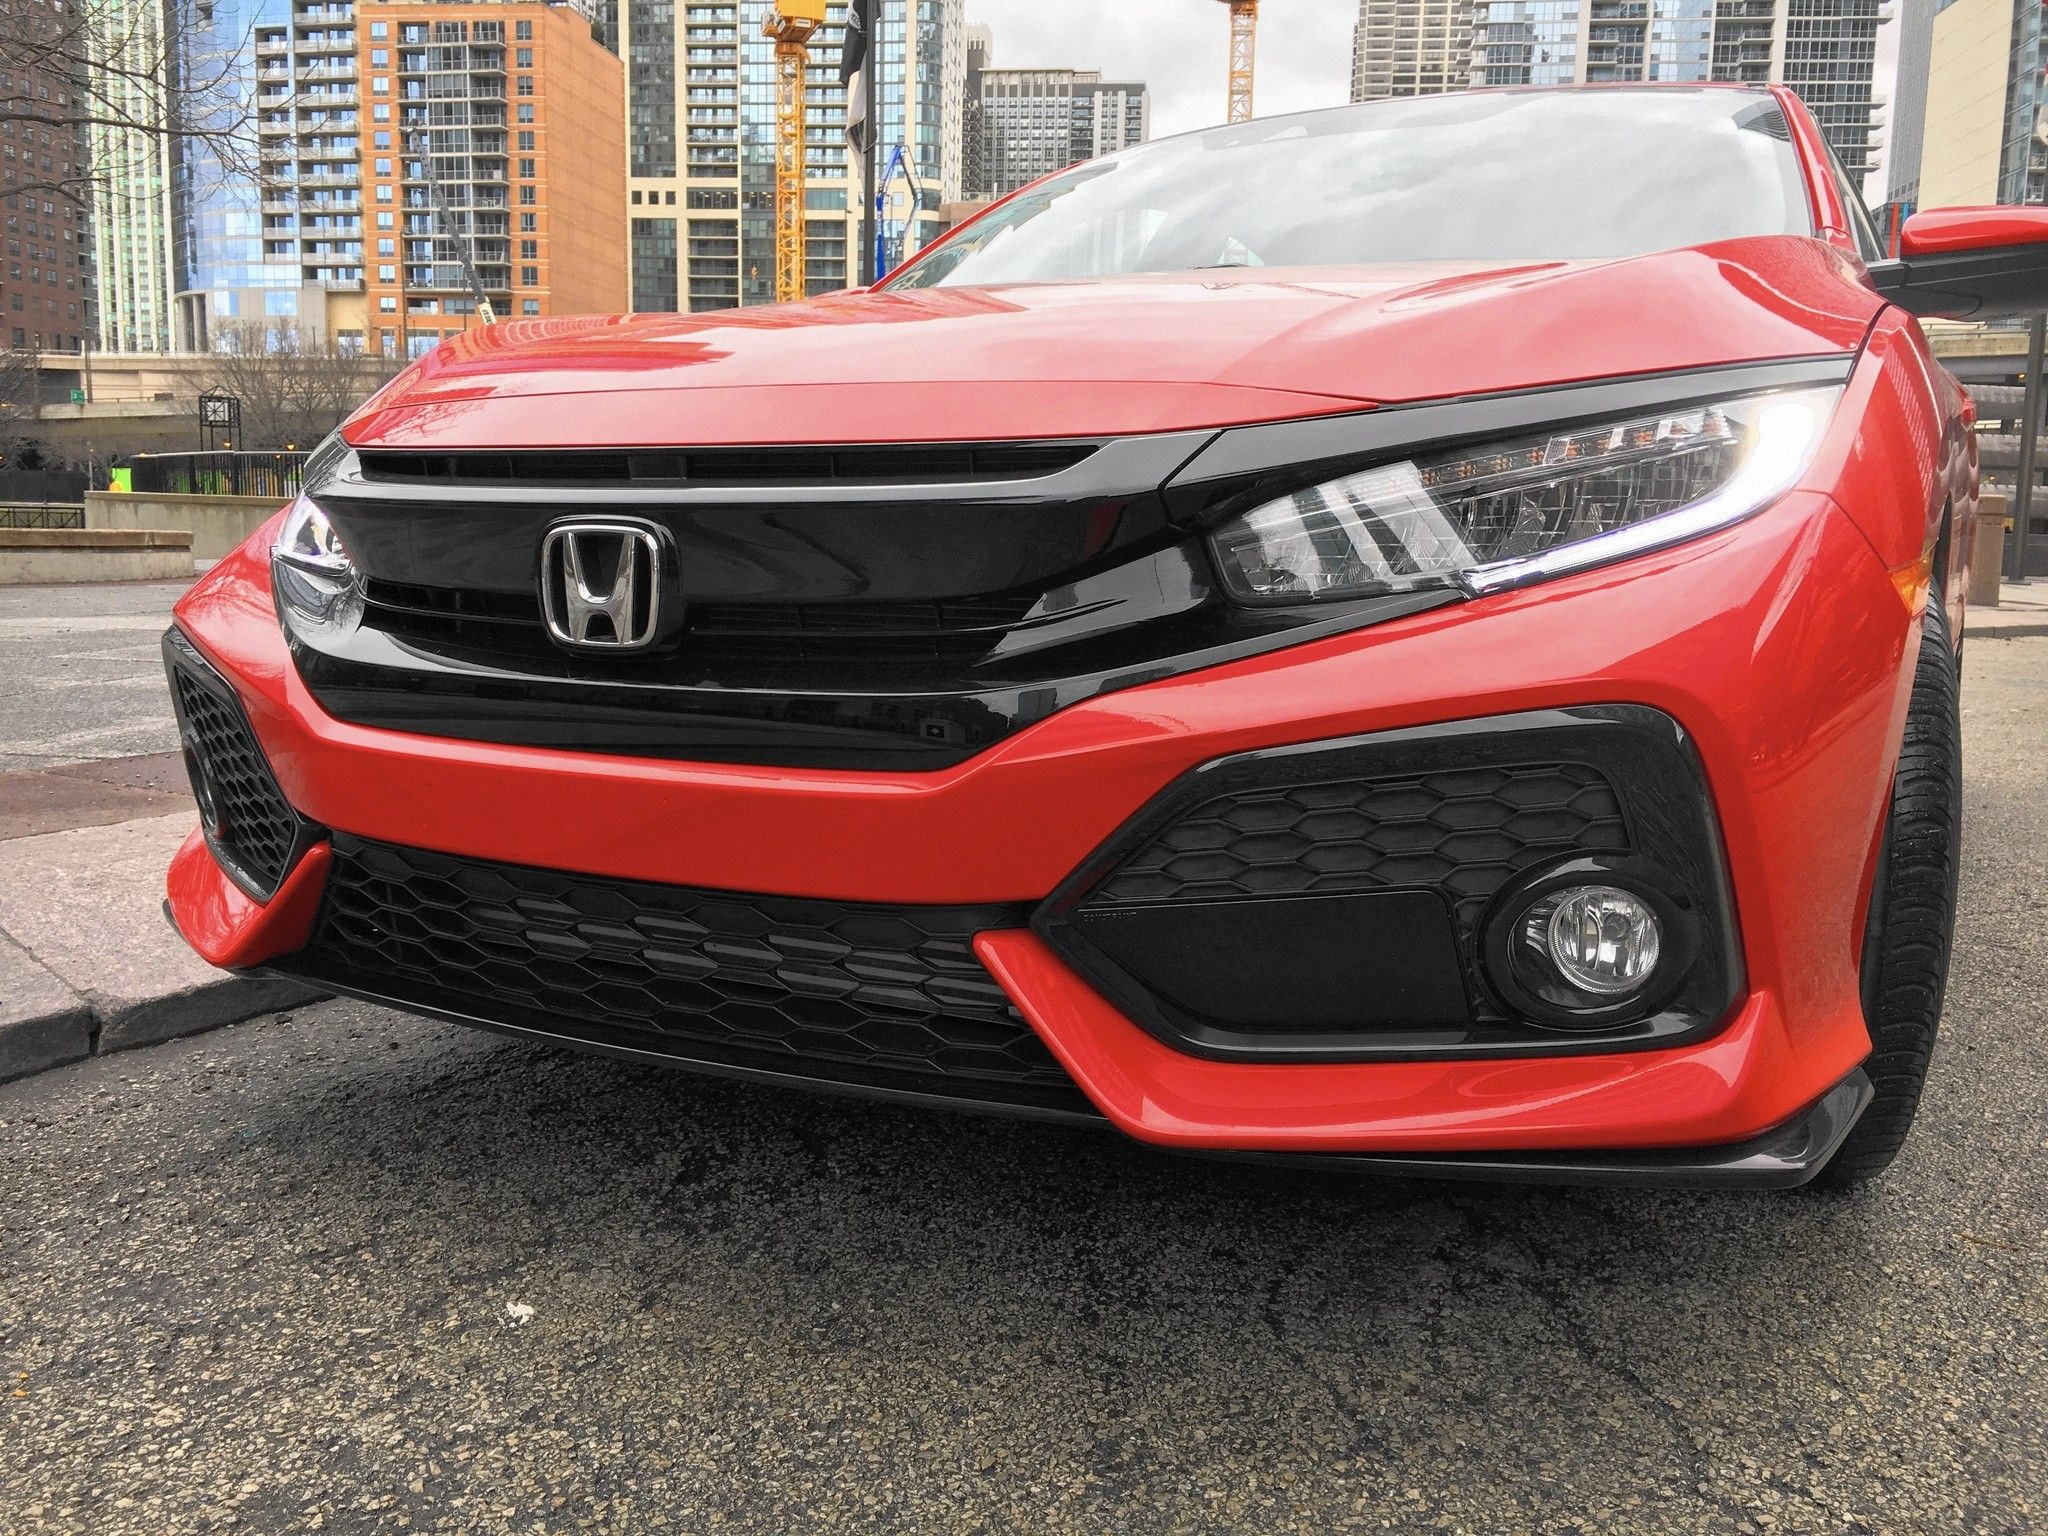 Honda brings Civic hatch back in style